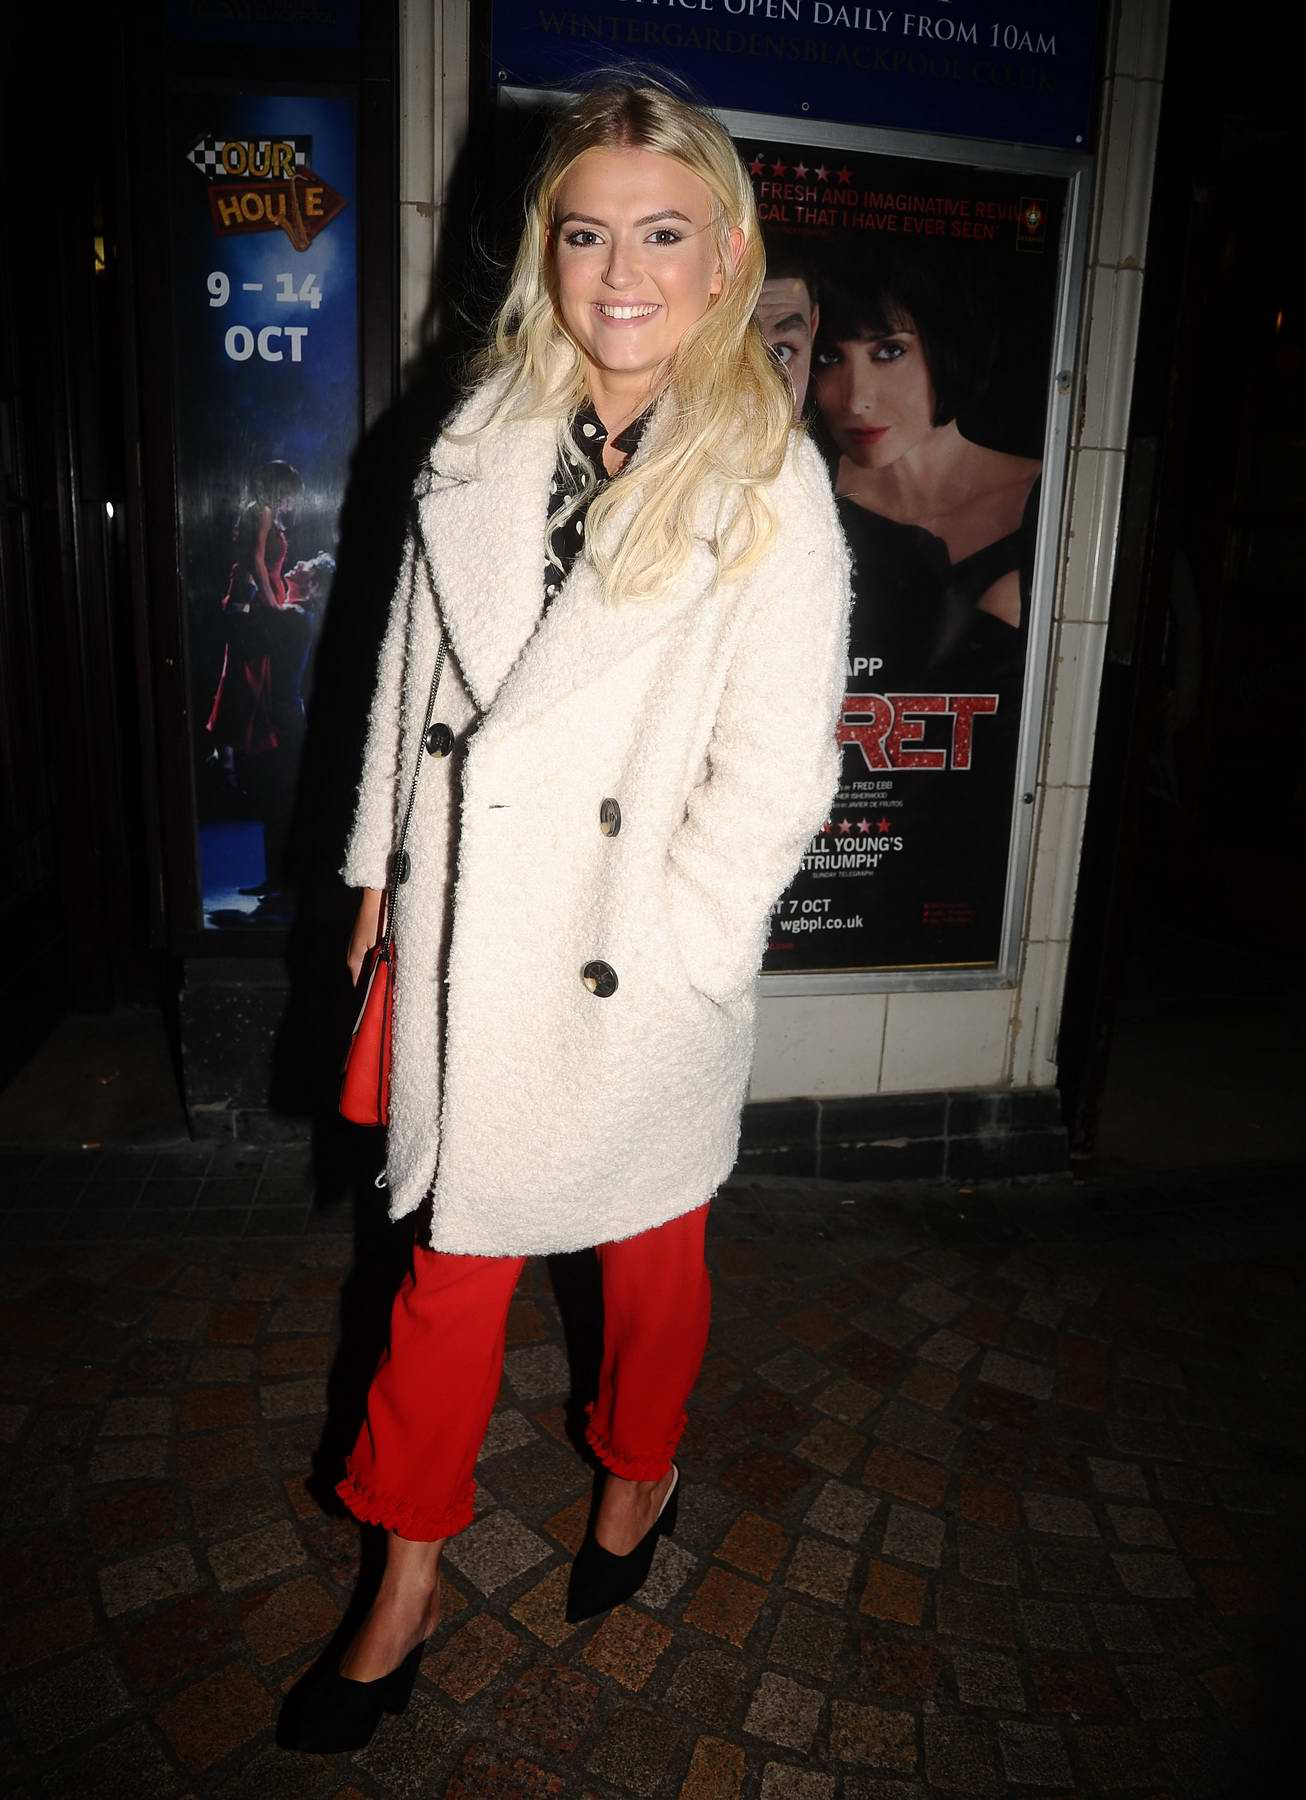 Lucy Fallon leaving the 'Cabaret' musical at the Blackpool Winter Gardens in Blackpool, UK